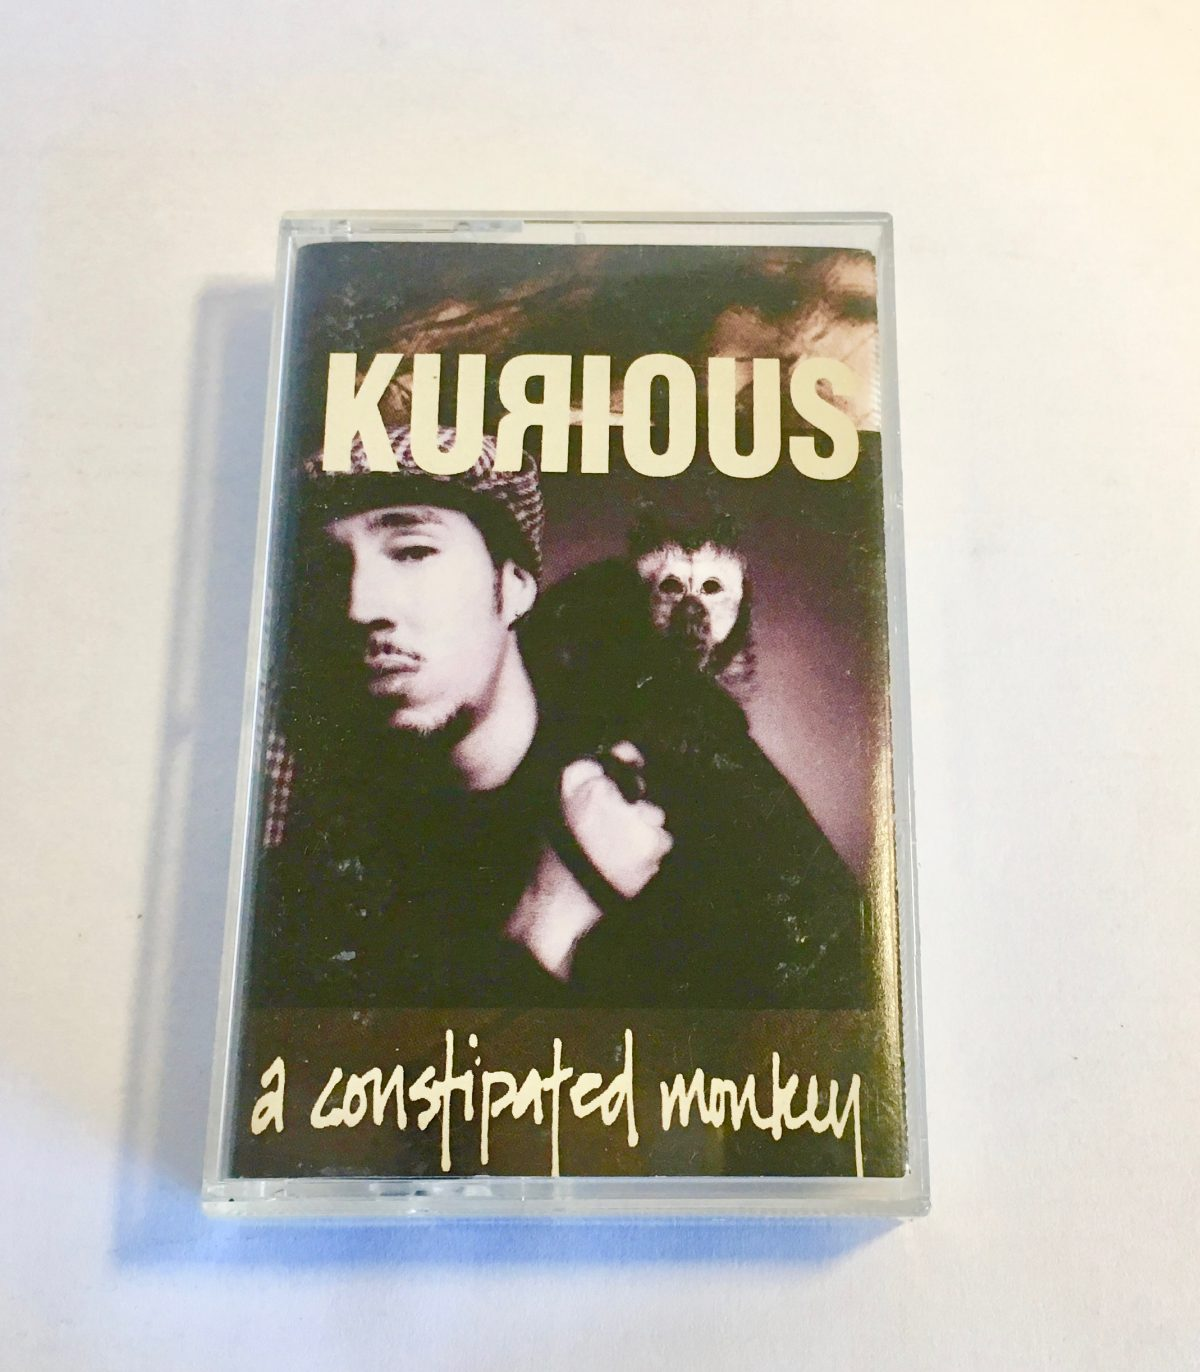 Kurious-A constipated Monkey